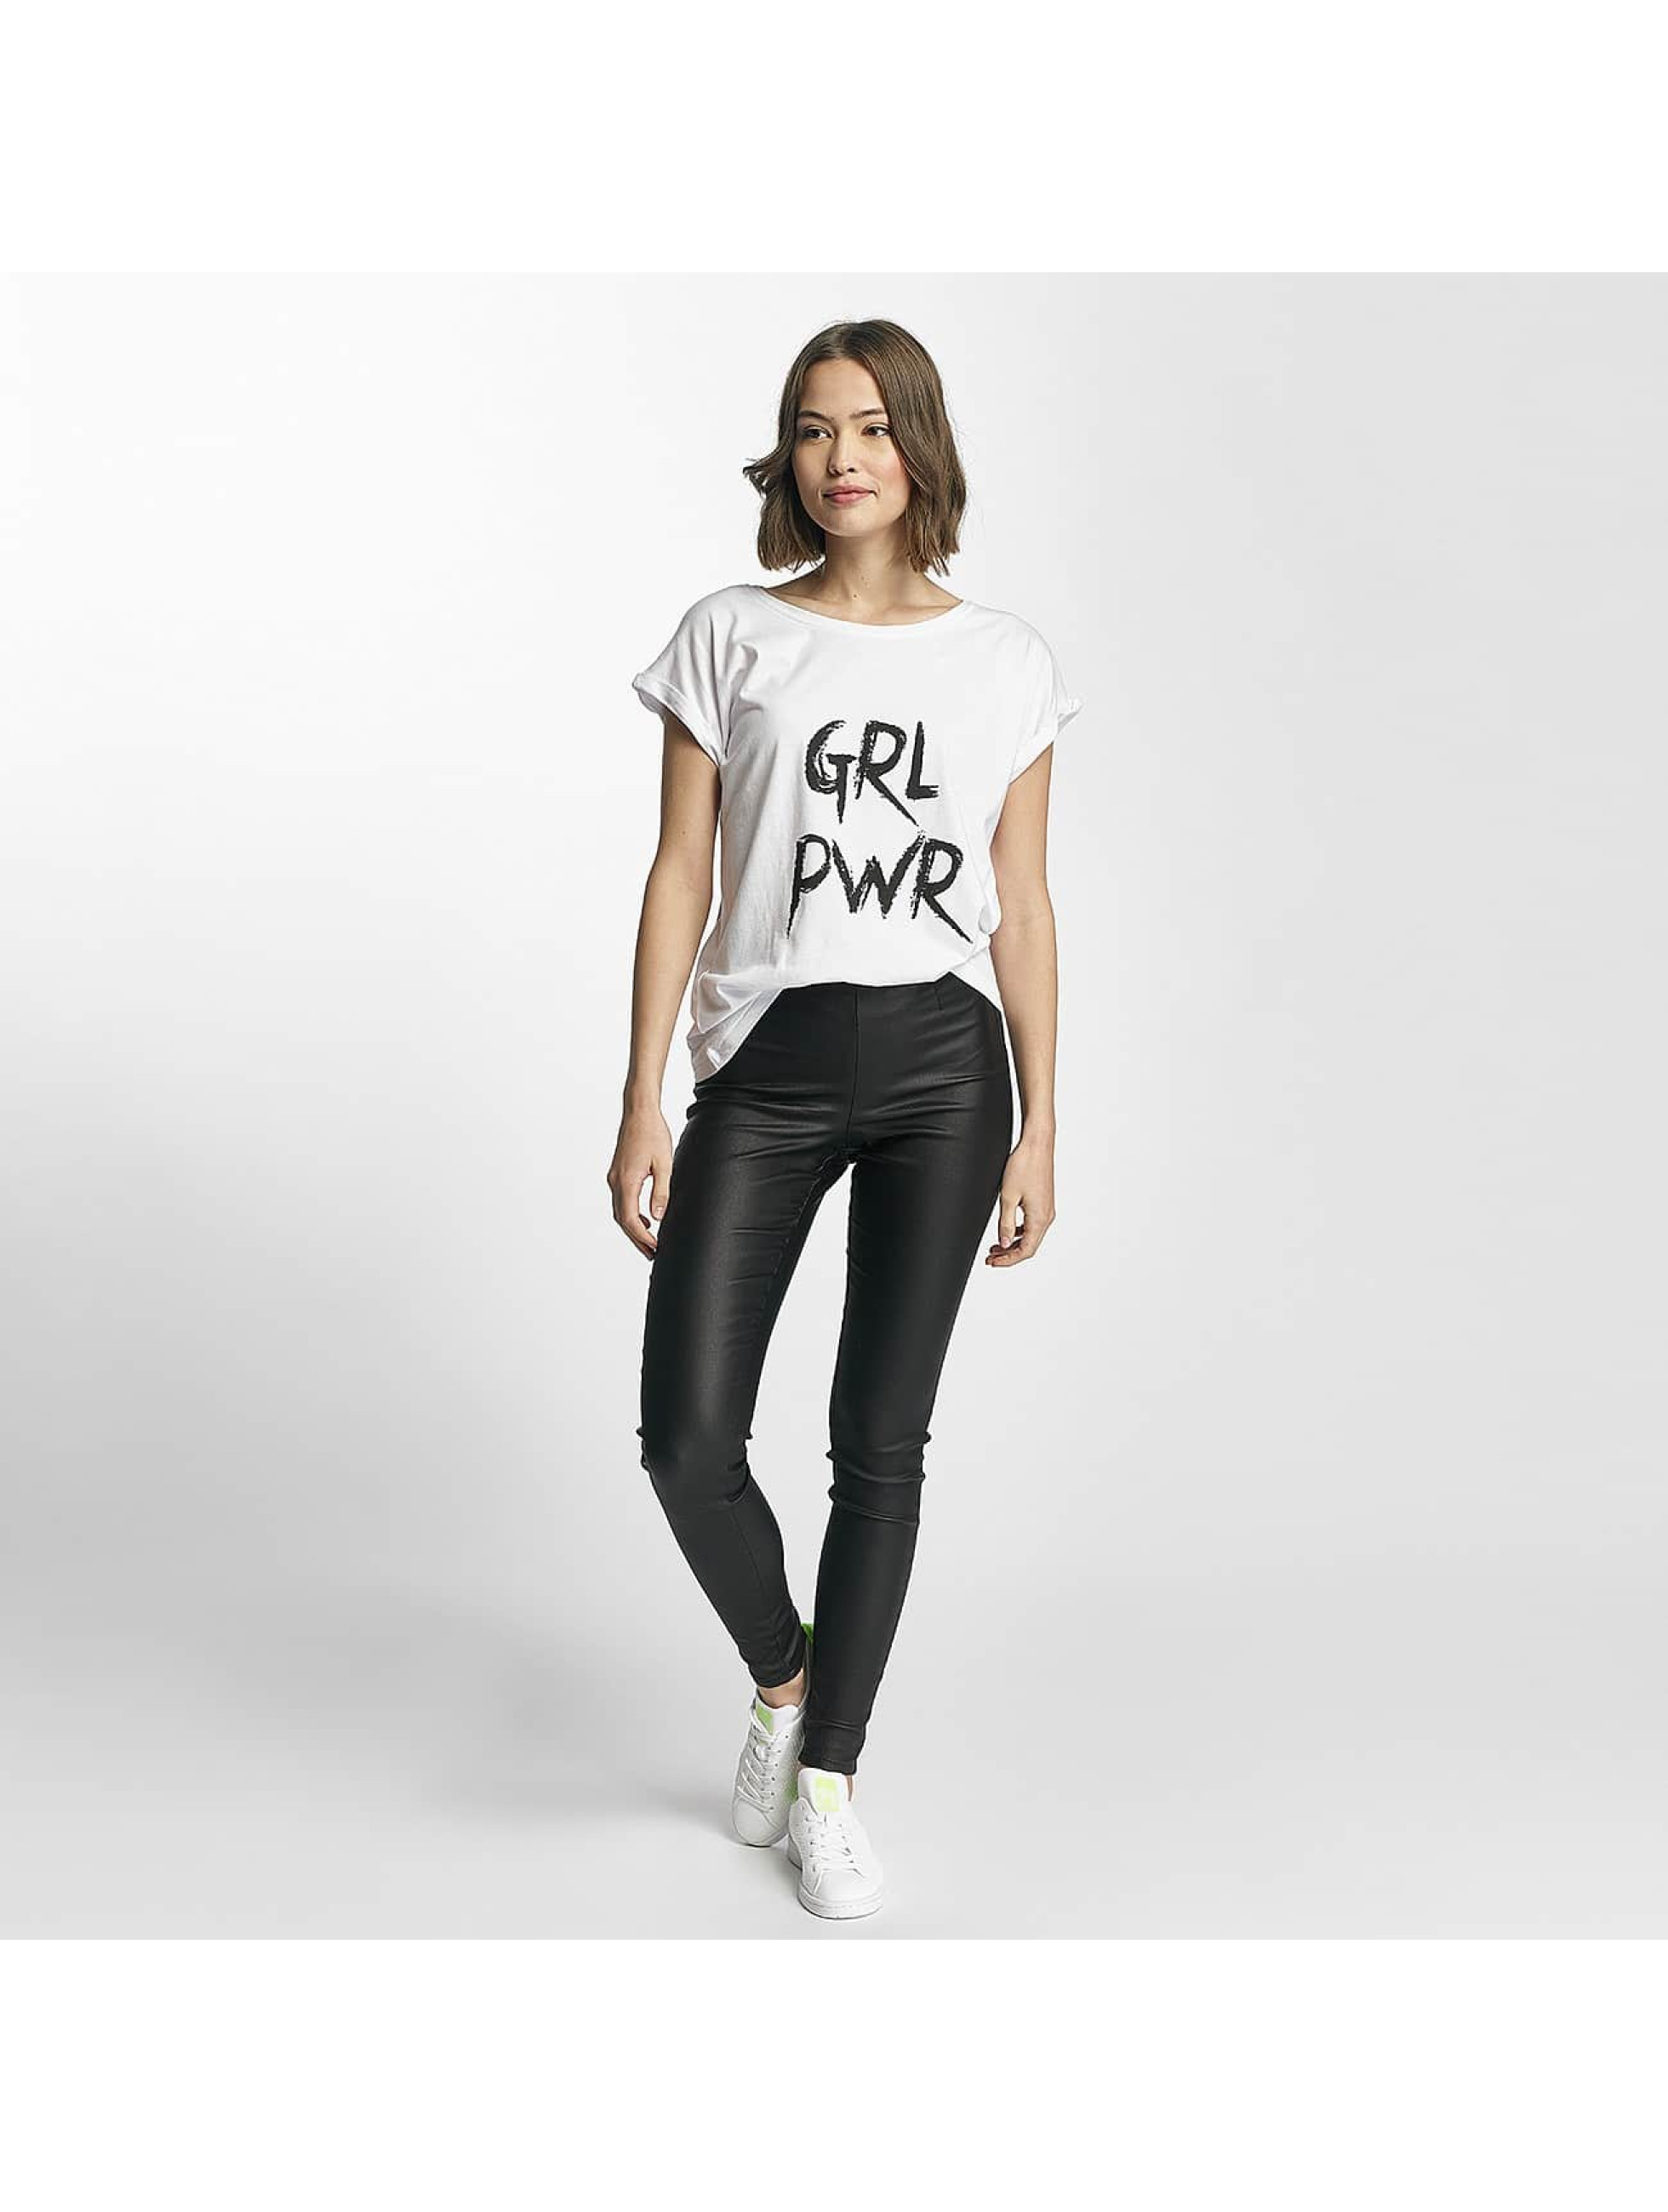 Mister Tee t-shirt GRL PWR wit